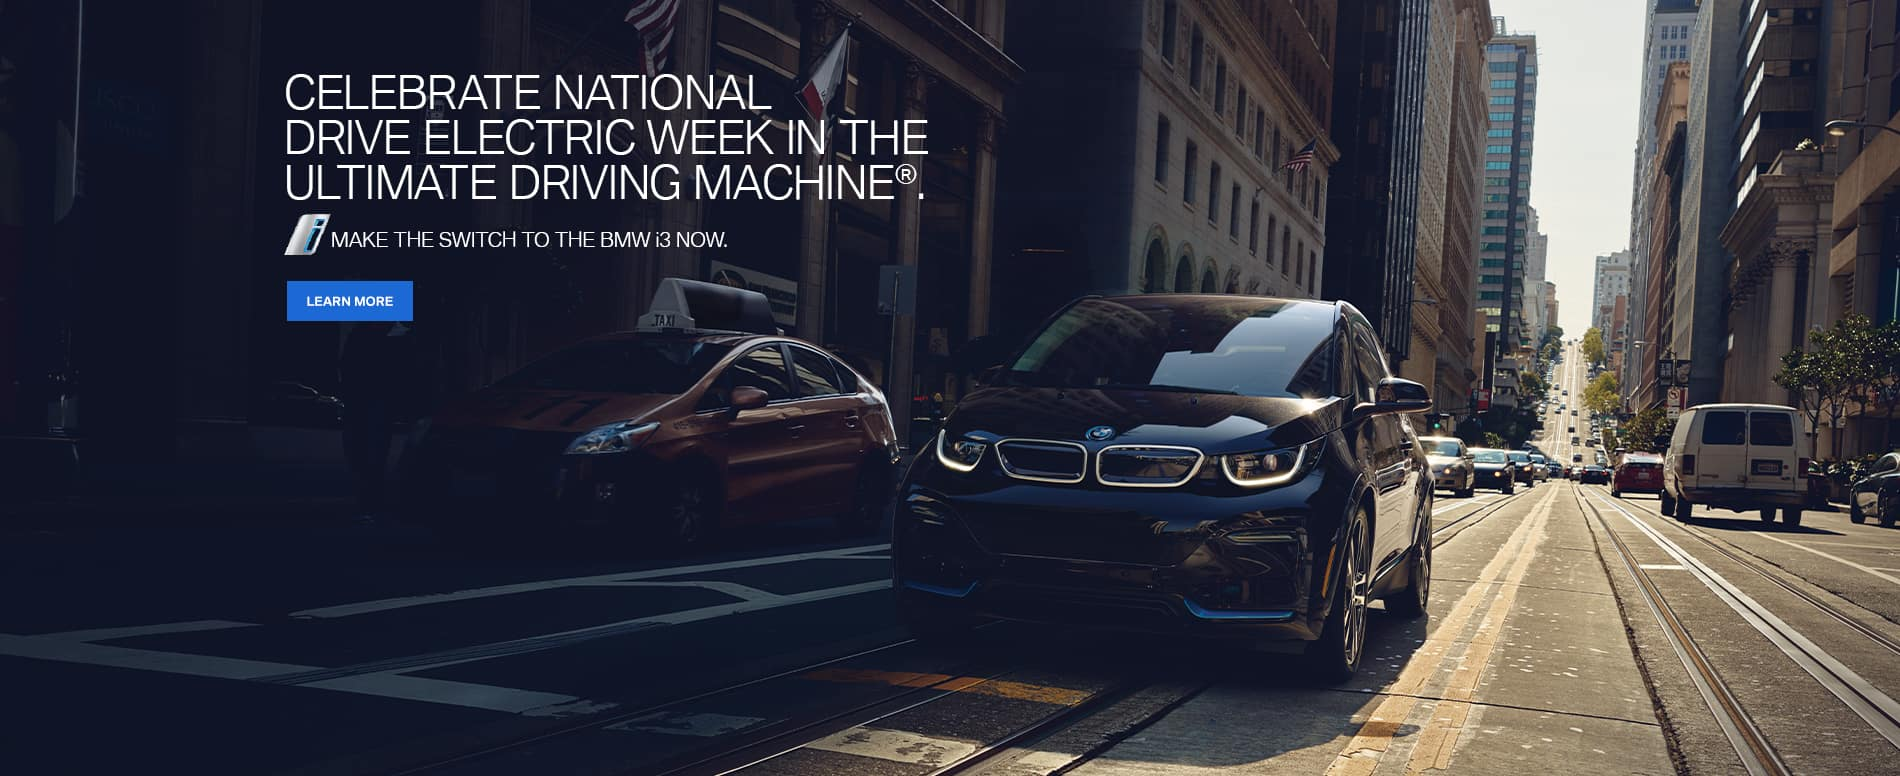 Celebrate National Drive Electric Week in the Ultimate Driving Machine